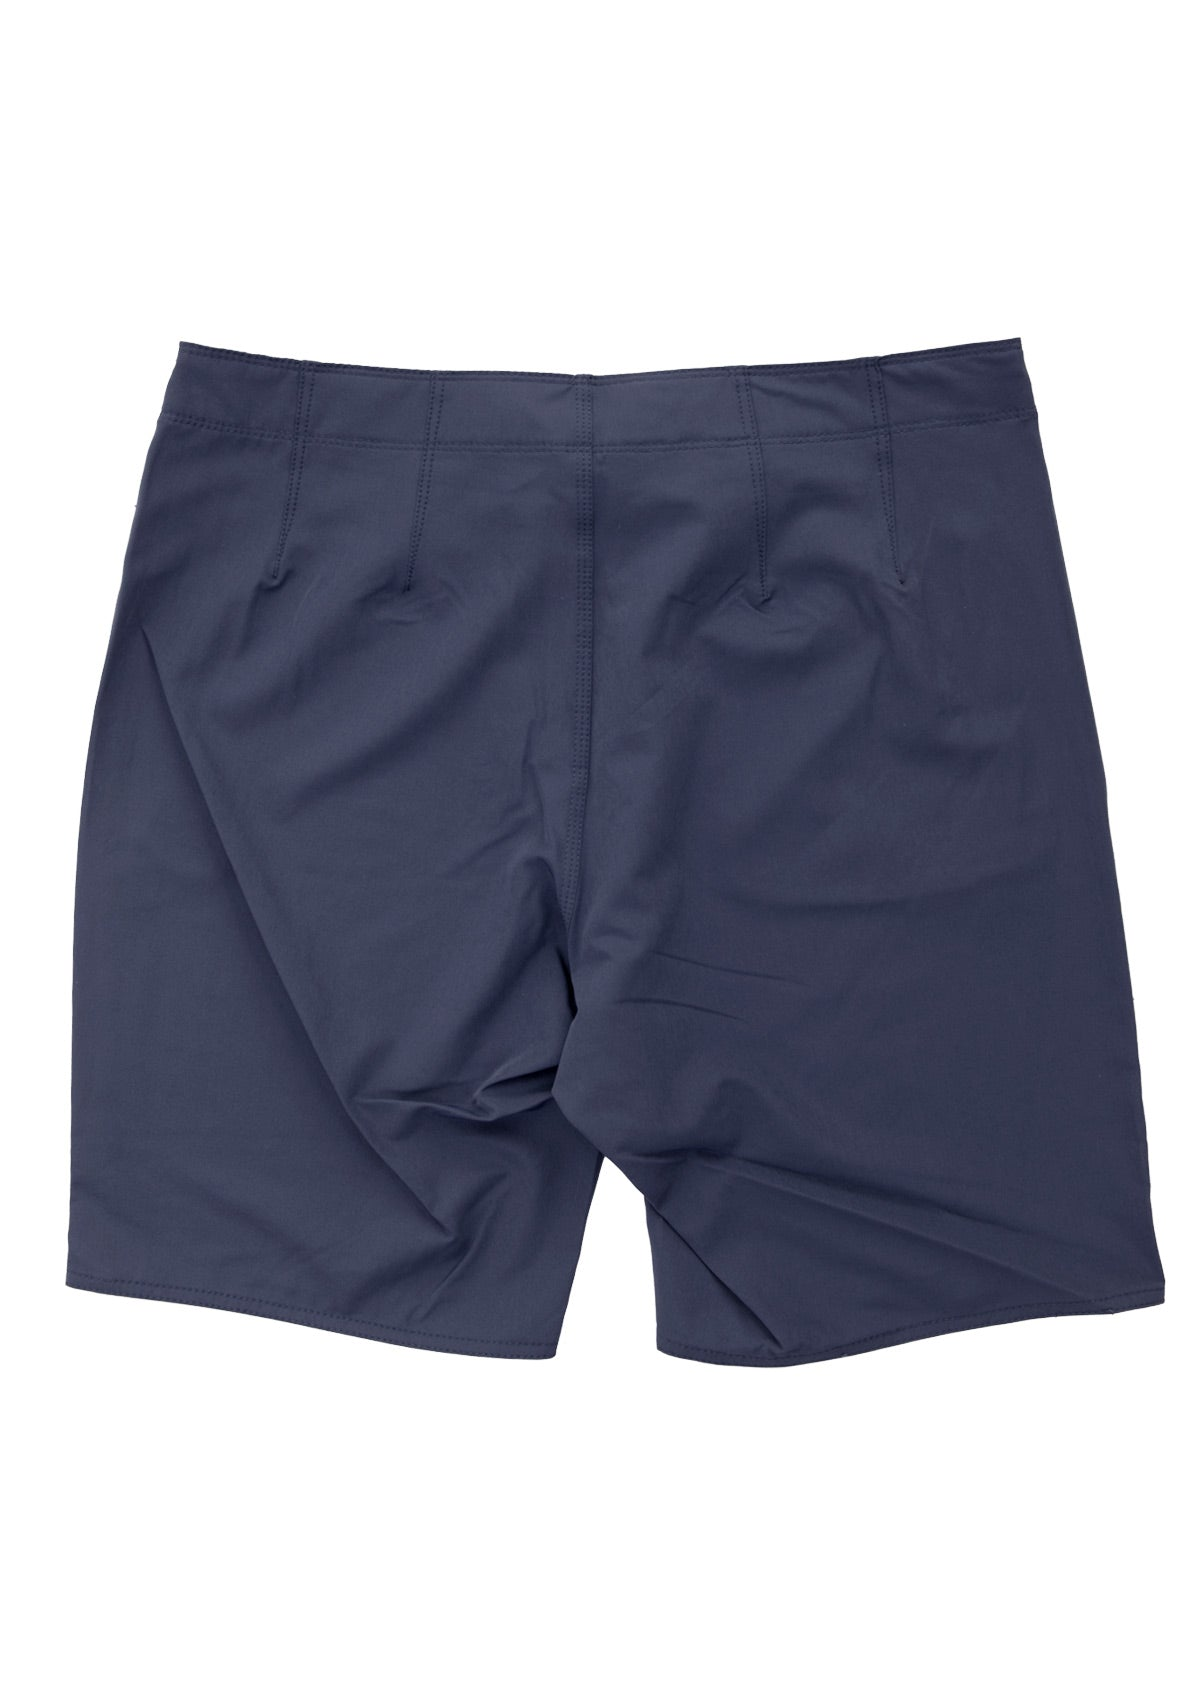 needessentials light weight surfing boardshort blue